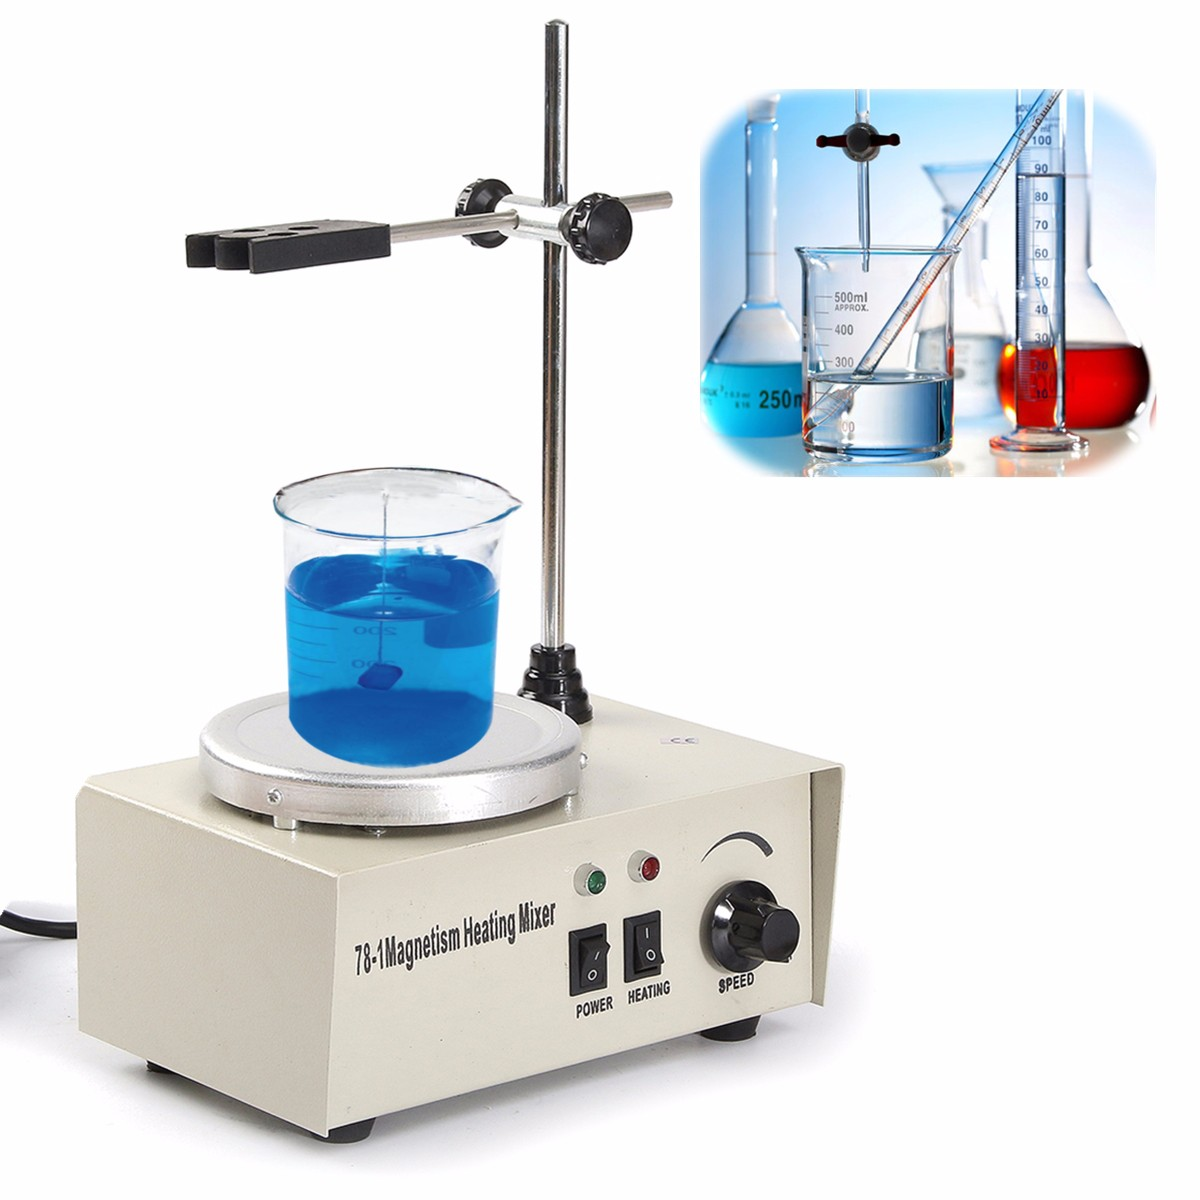 KiCute 220V 50HZ Lab Supplies Chemistry Magnetic Stirrer Magnetic Stirrer Office Laboratory Magnetic Mixer Stirrers Apparatus models atomic orbital of ethylene molecular modeling chemistry teaching supplies